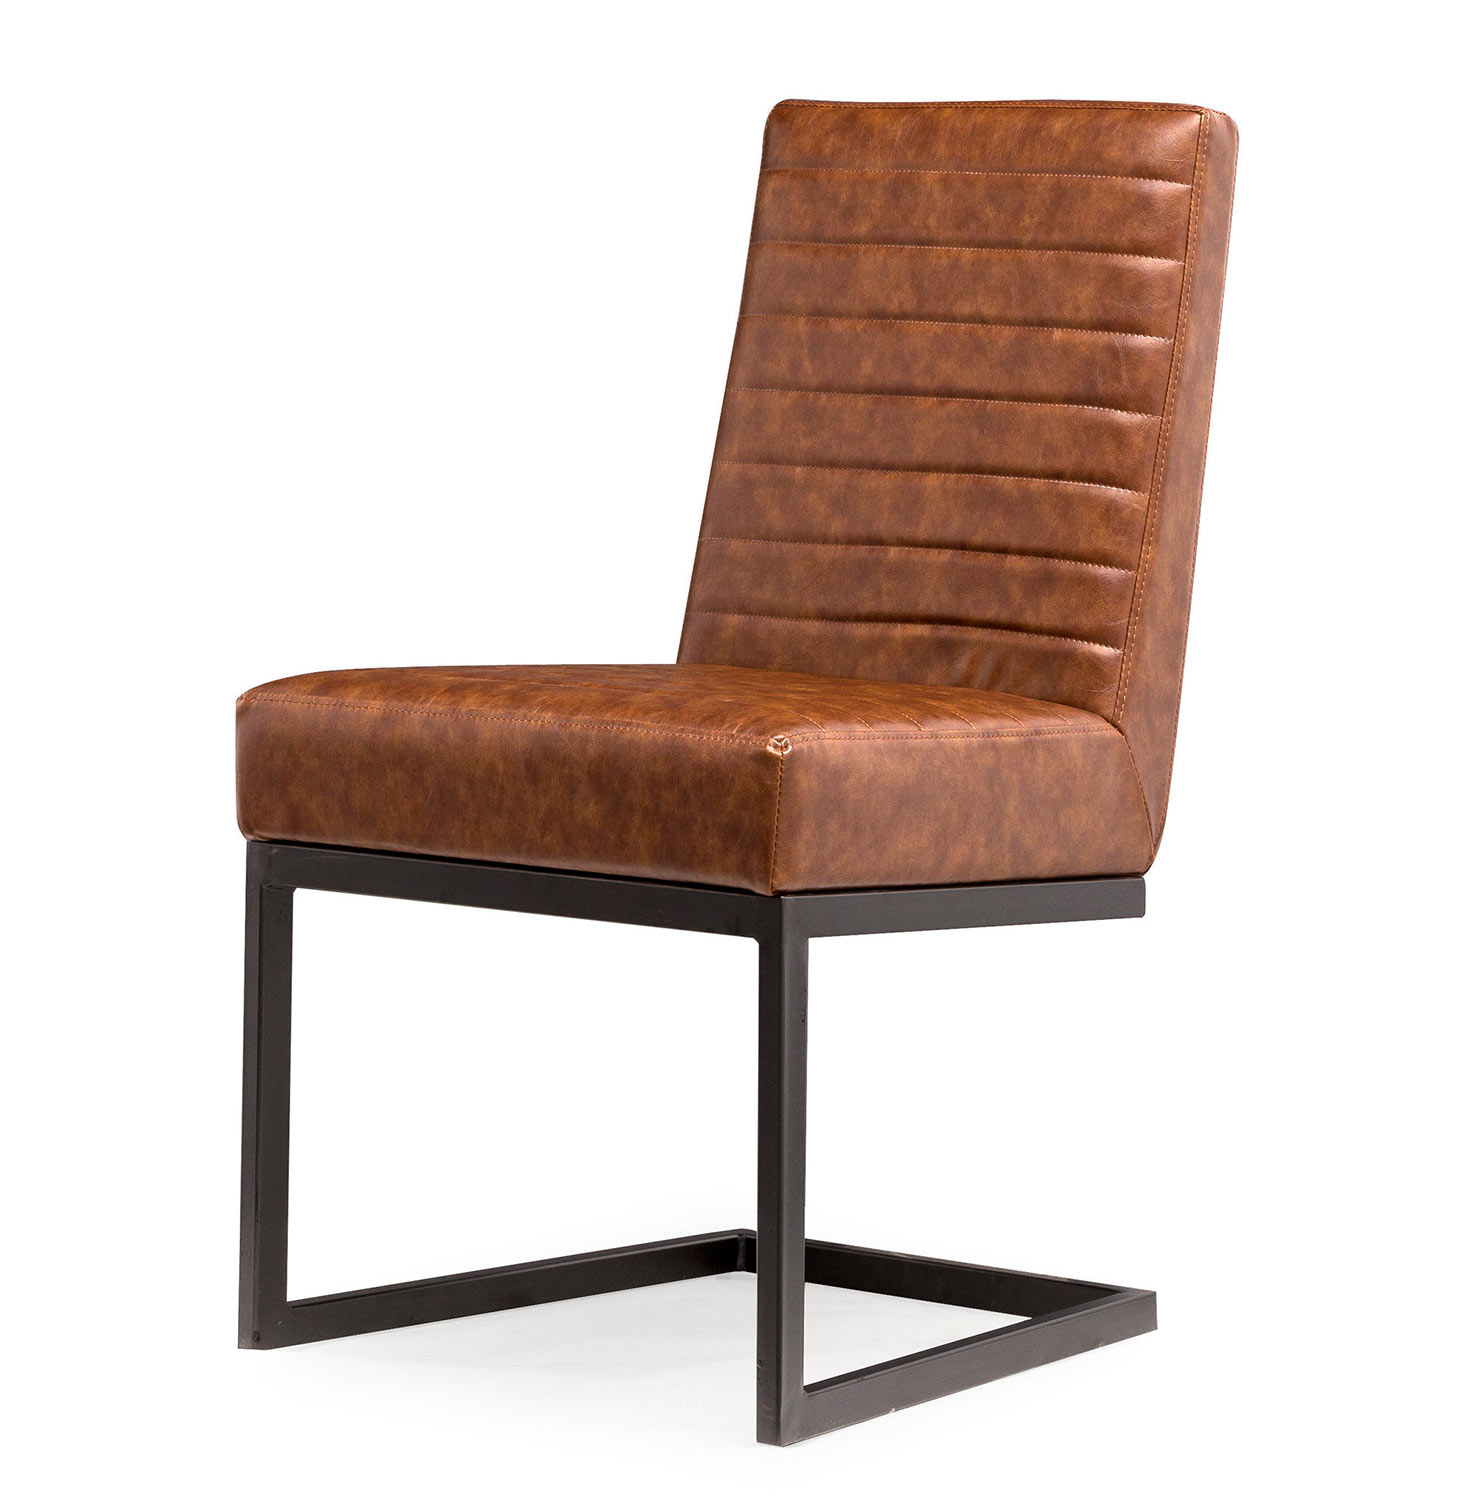 TOV Furniture Austin Chair - Brown/Black - Set of 2